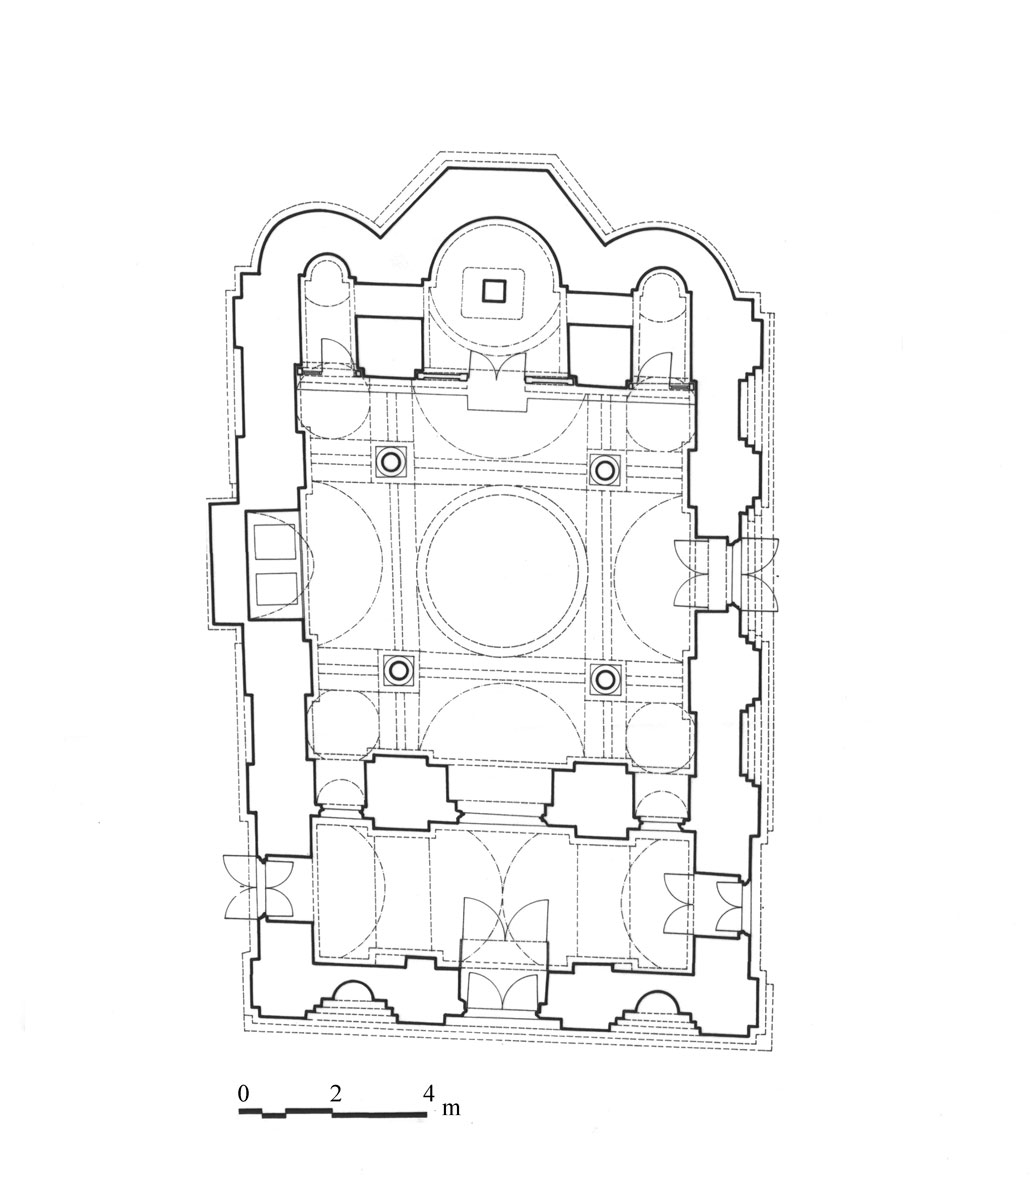 Fig. 2. Ground plan of the church.